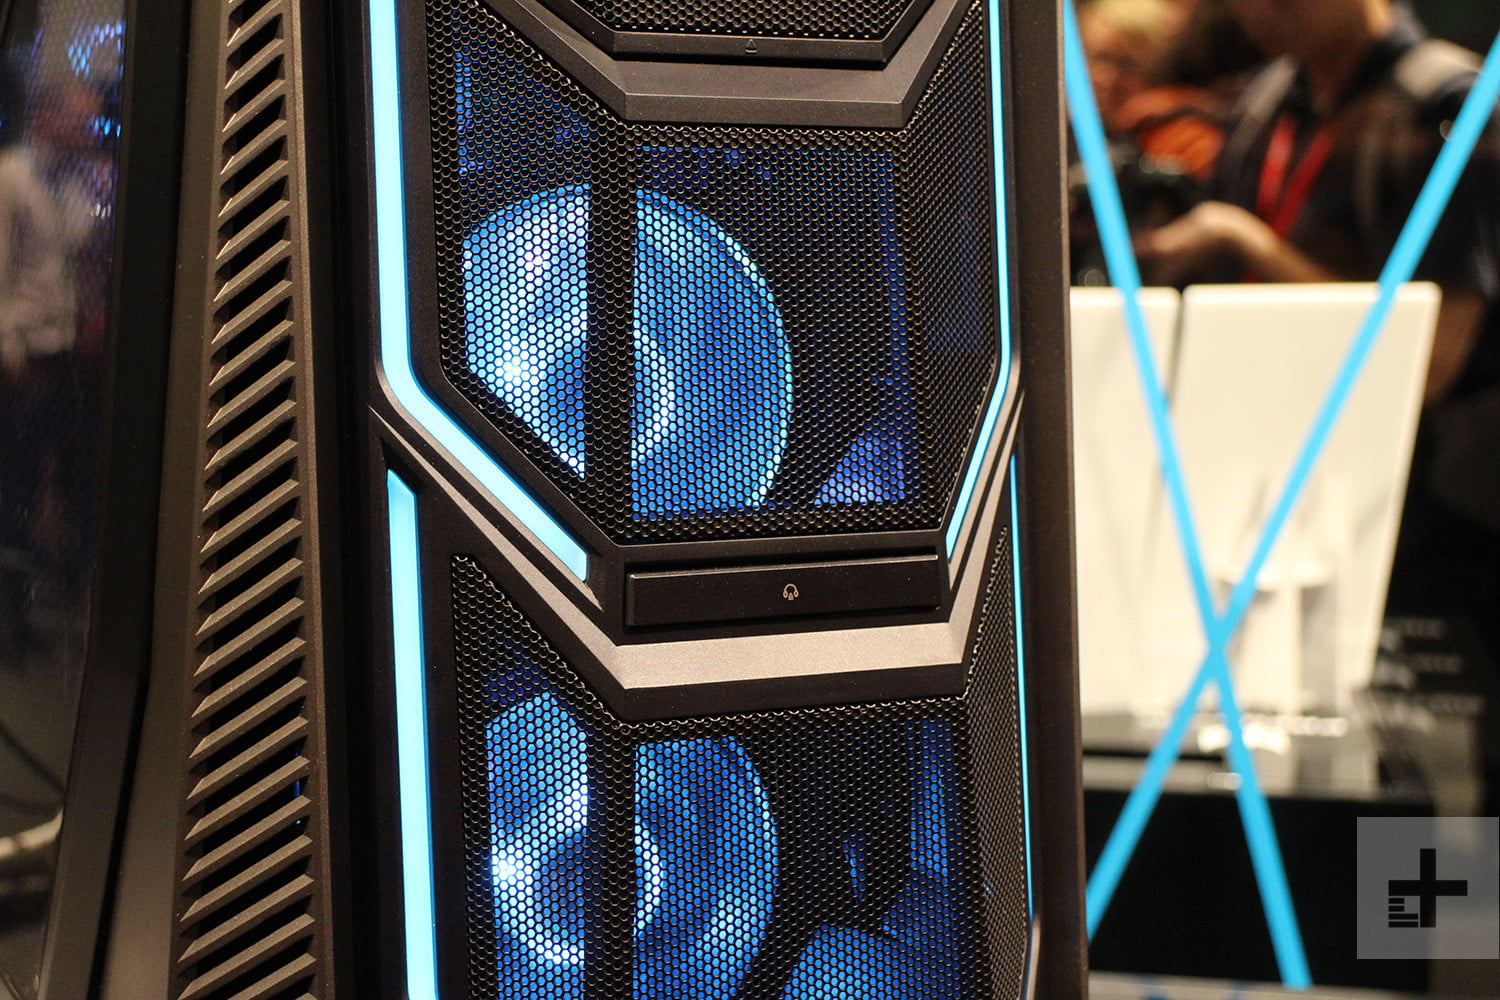 Acer Predator Orion 9000 front grill